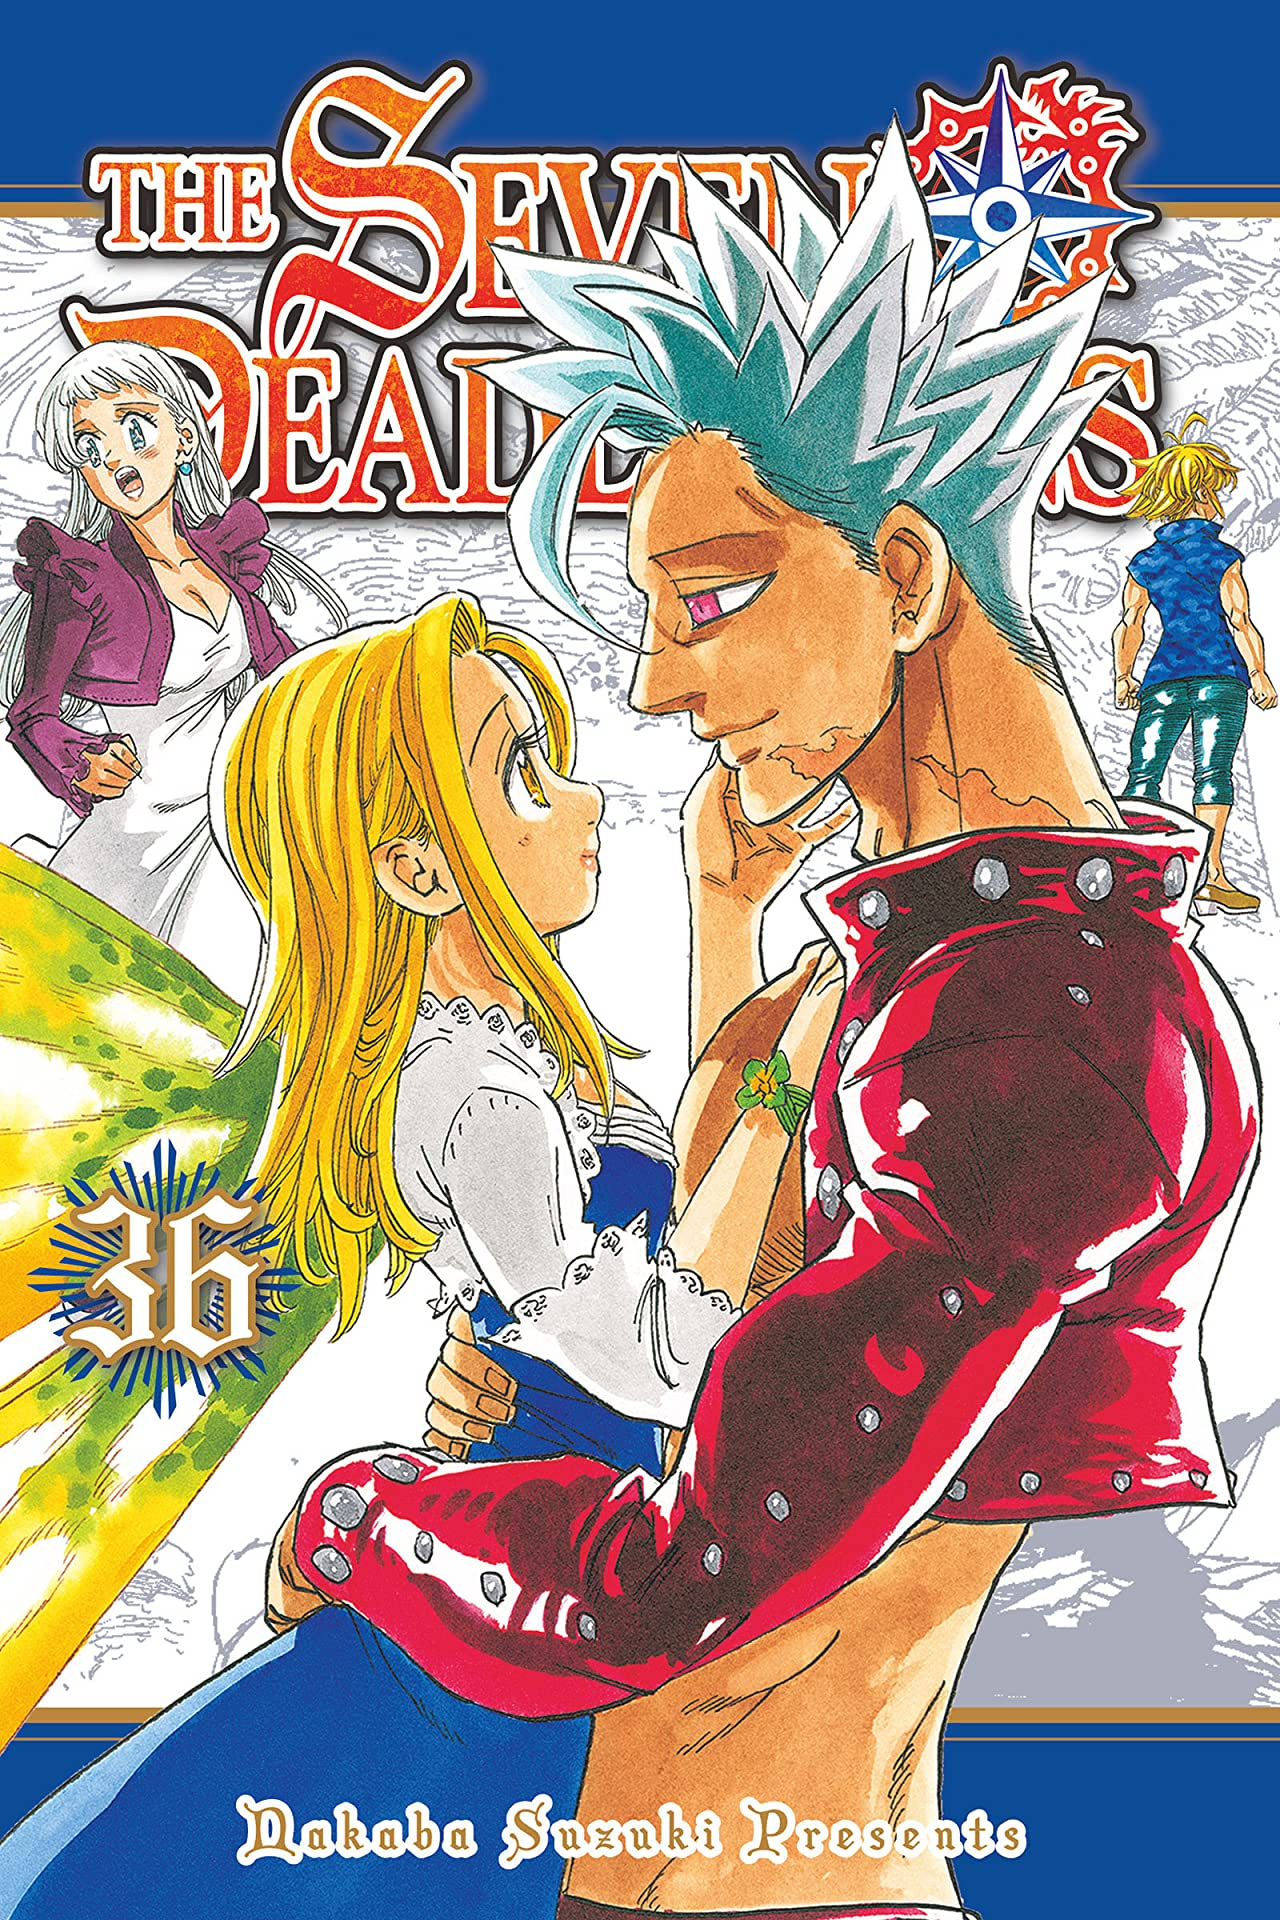 The Seven Deadly Sins Vol. 36